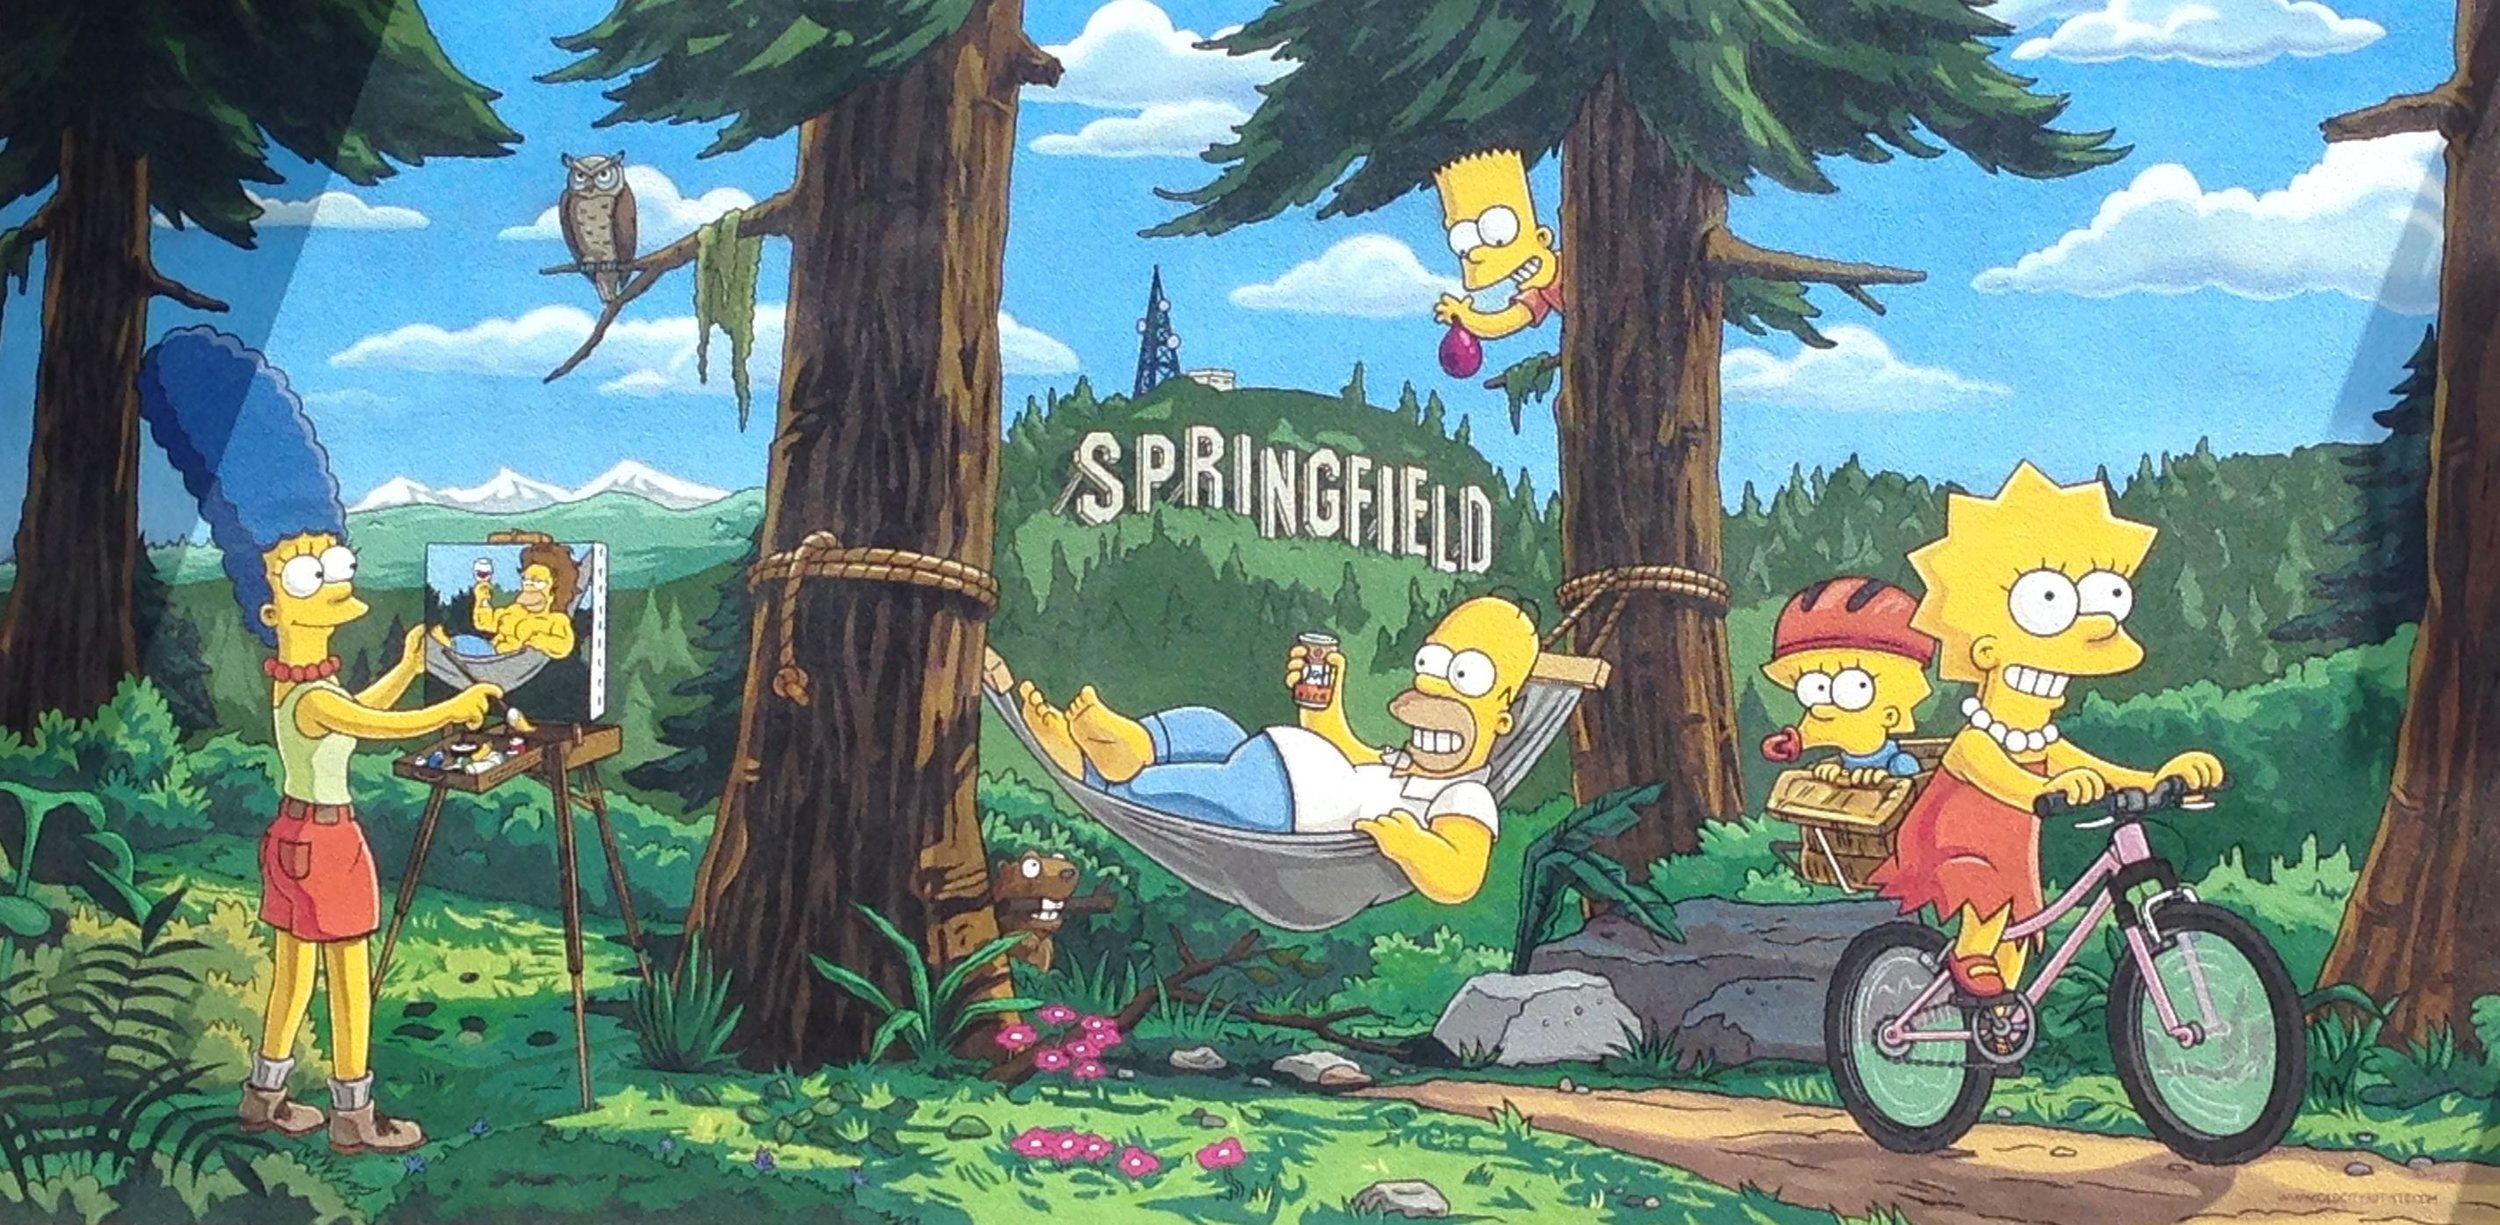 10. Official Simpsons Mural (2014), by Matt Groening, Julius Priete, and Old City Artists